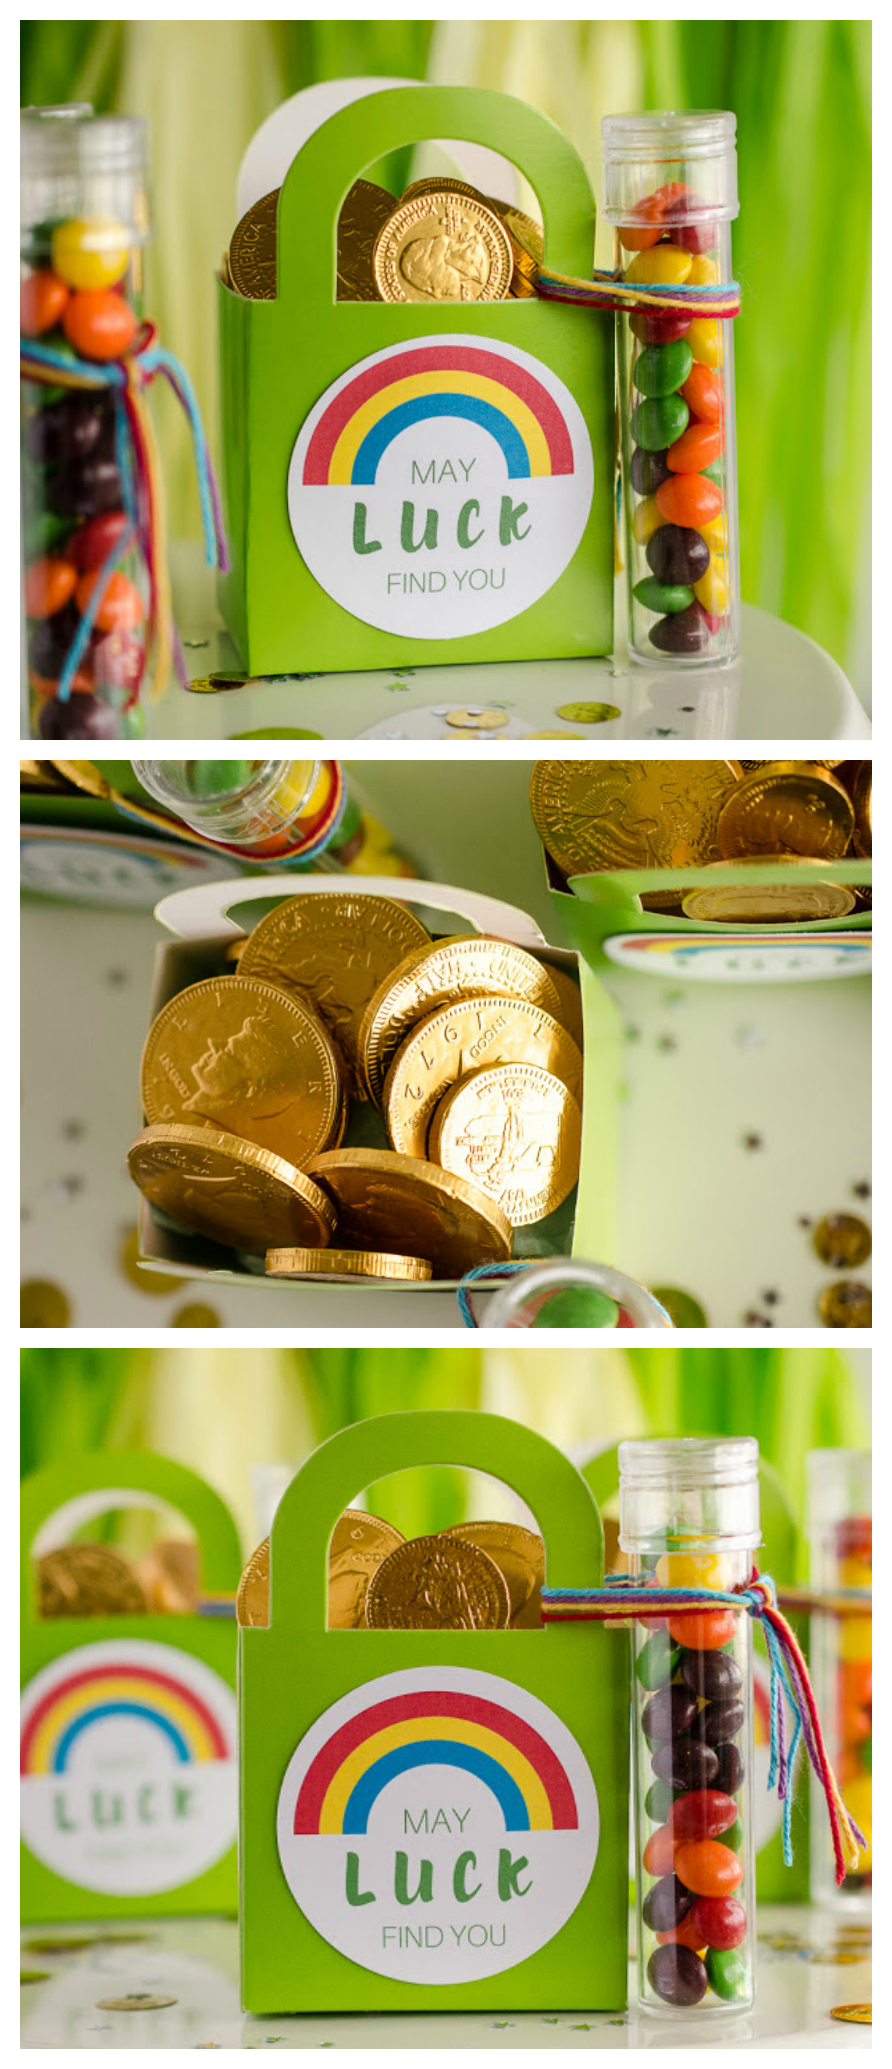 May Luck Find You Leprechaun Goodie Bags   St. Patrick's Day Ideas